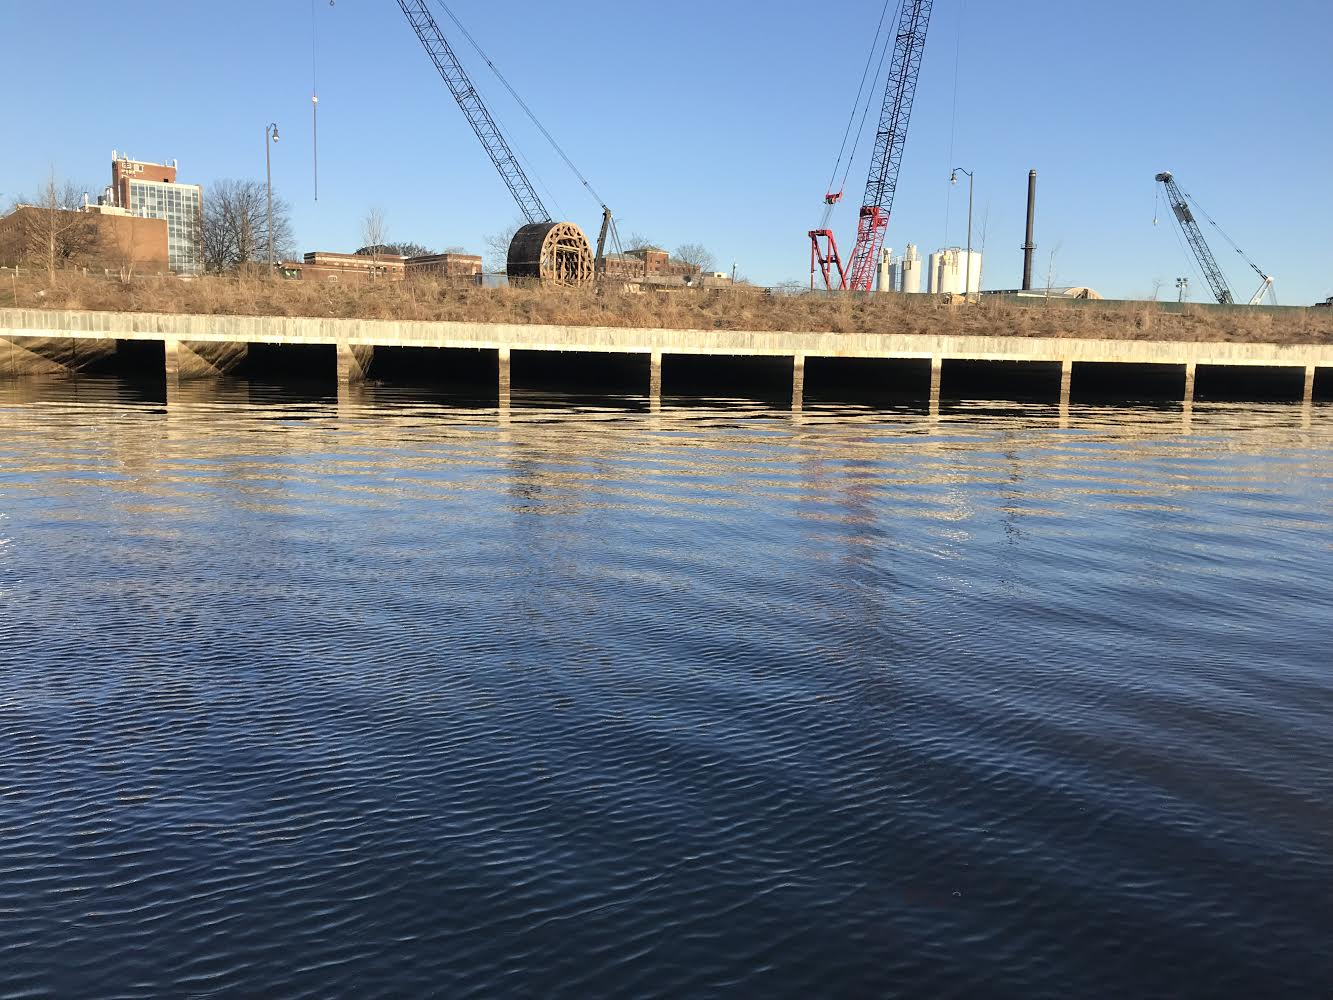 Before the Anacostia River Tunnel project was implemented, polluted waters would frequently overflow from these CSO outfalls into the river. Photo credit: Samantha Gleich